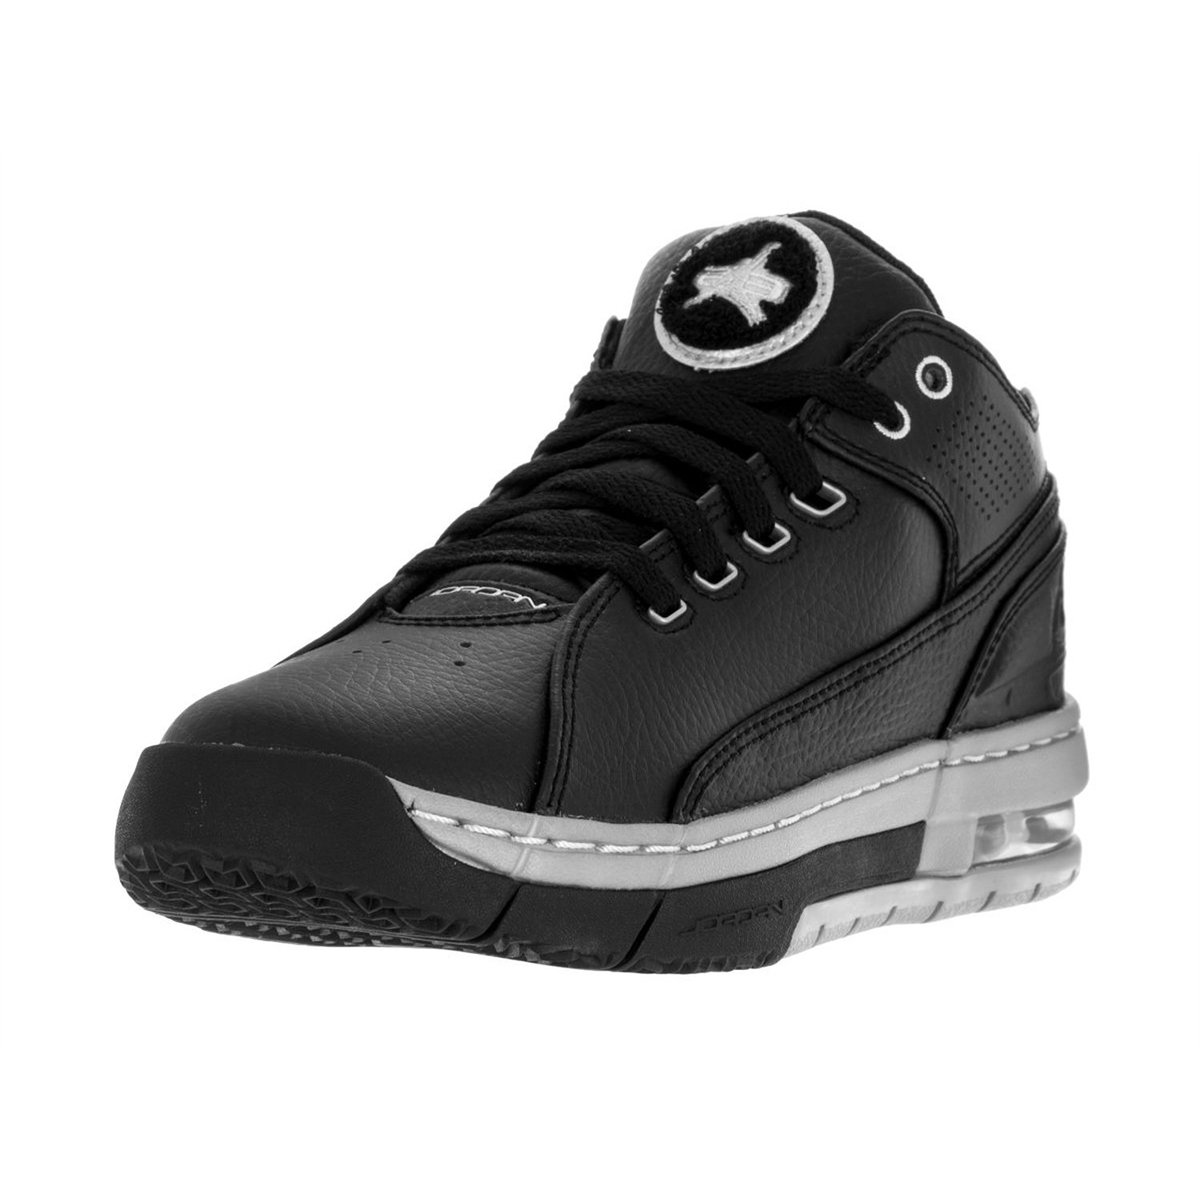 Jordan Nike Kids' Ol'School Low Black and Silver Synthetic Leather Basketball Shoes 4